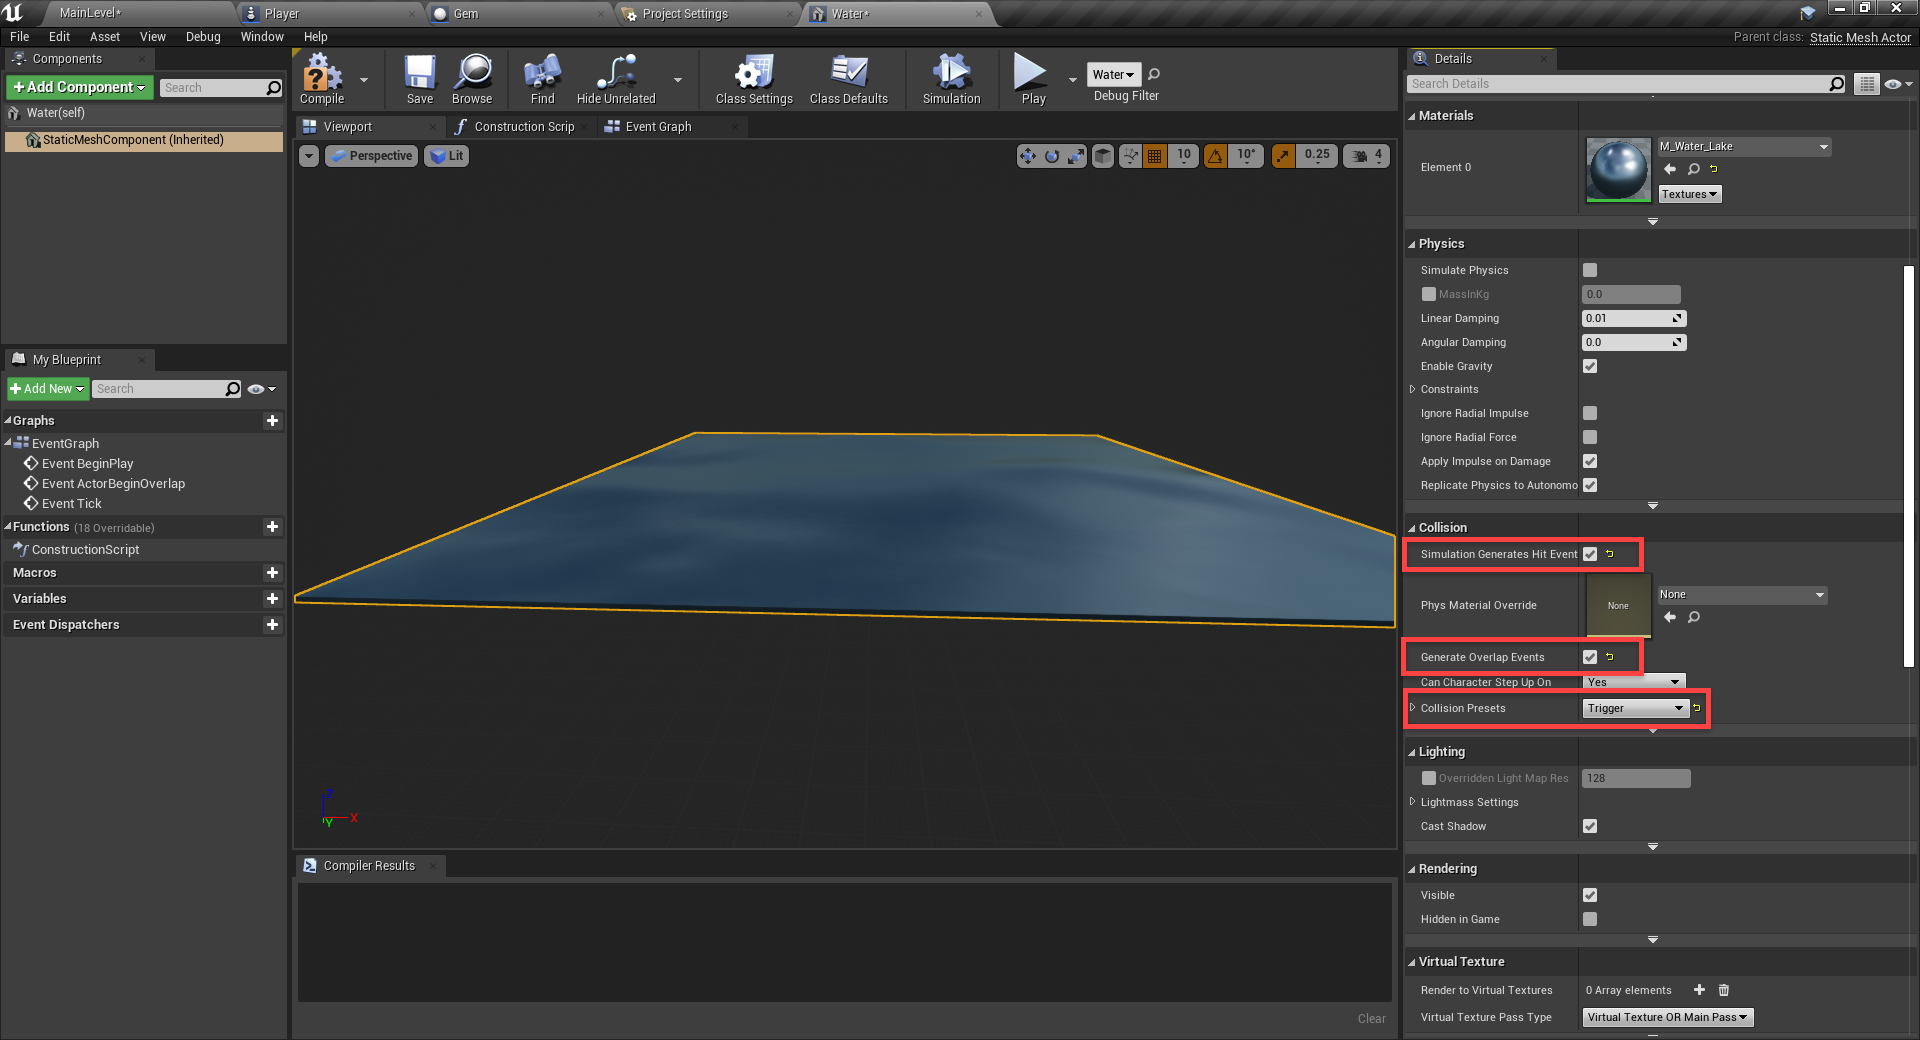 Unreal Engine water element with dying blueprint added